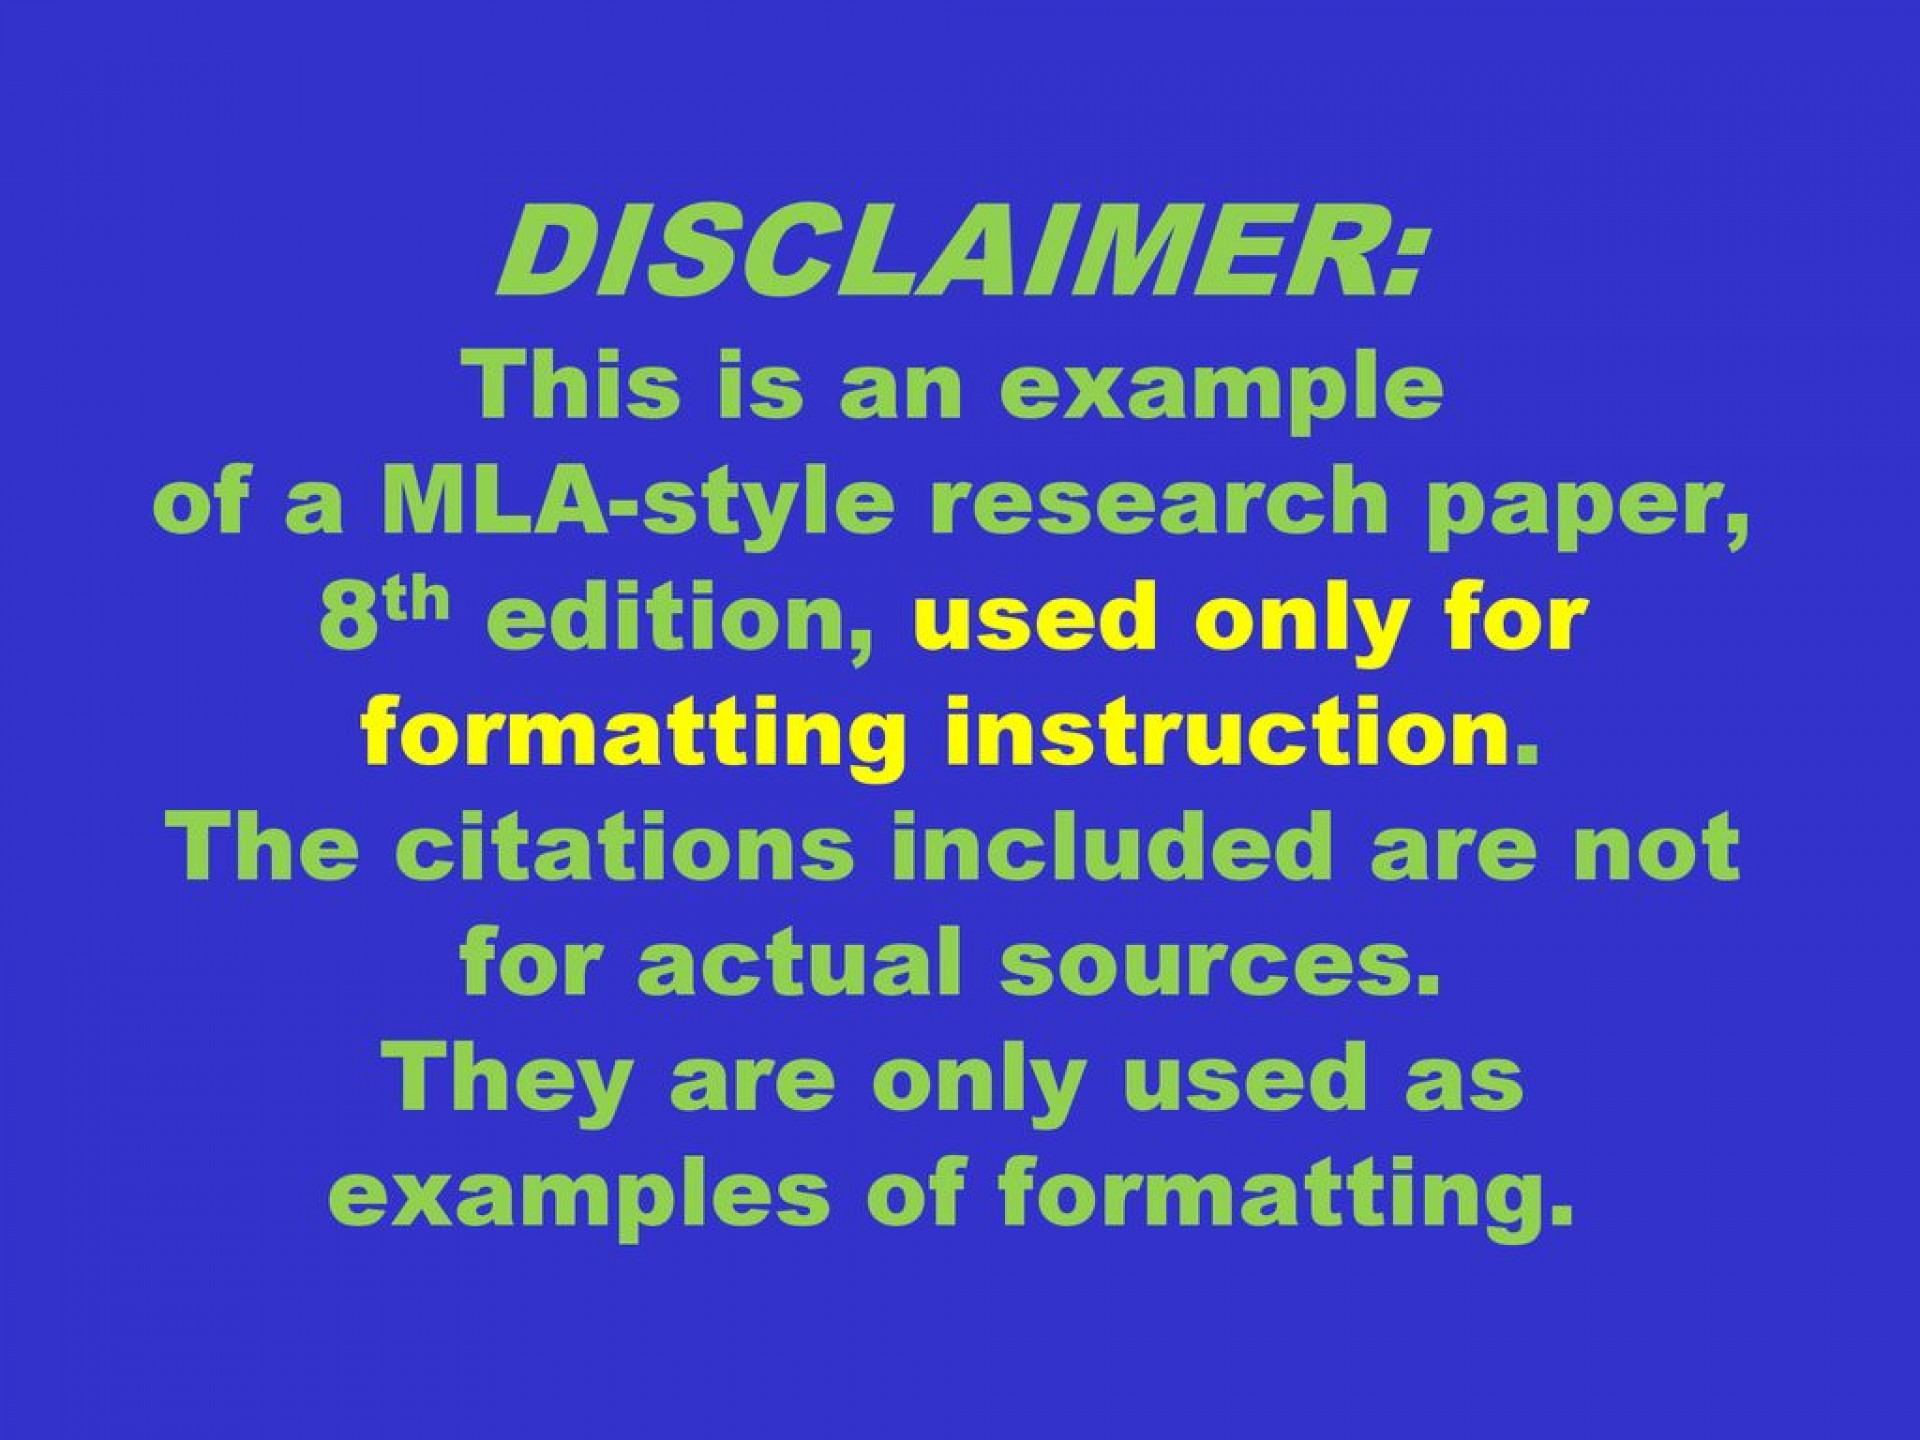 022 Disclaimer3athisisanexampleofamla Styleresearchpaper2c8thedition2cusedonlyforformattinginstruction Research Paper Mla Formatting Wondrous Instructions 1920